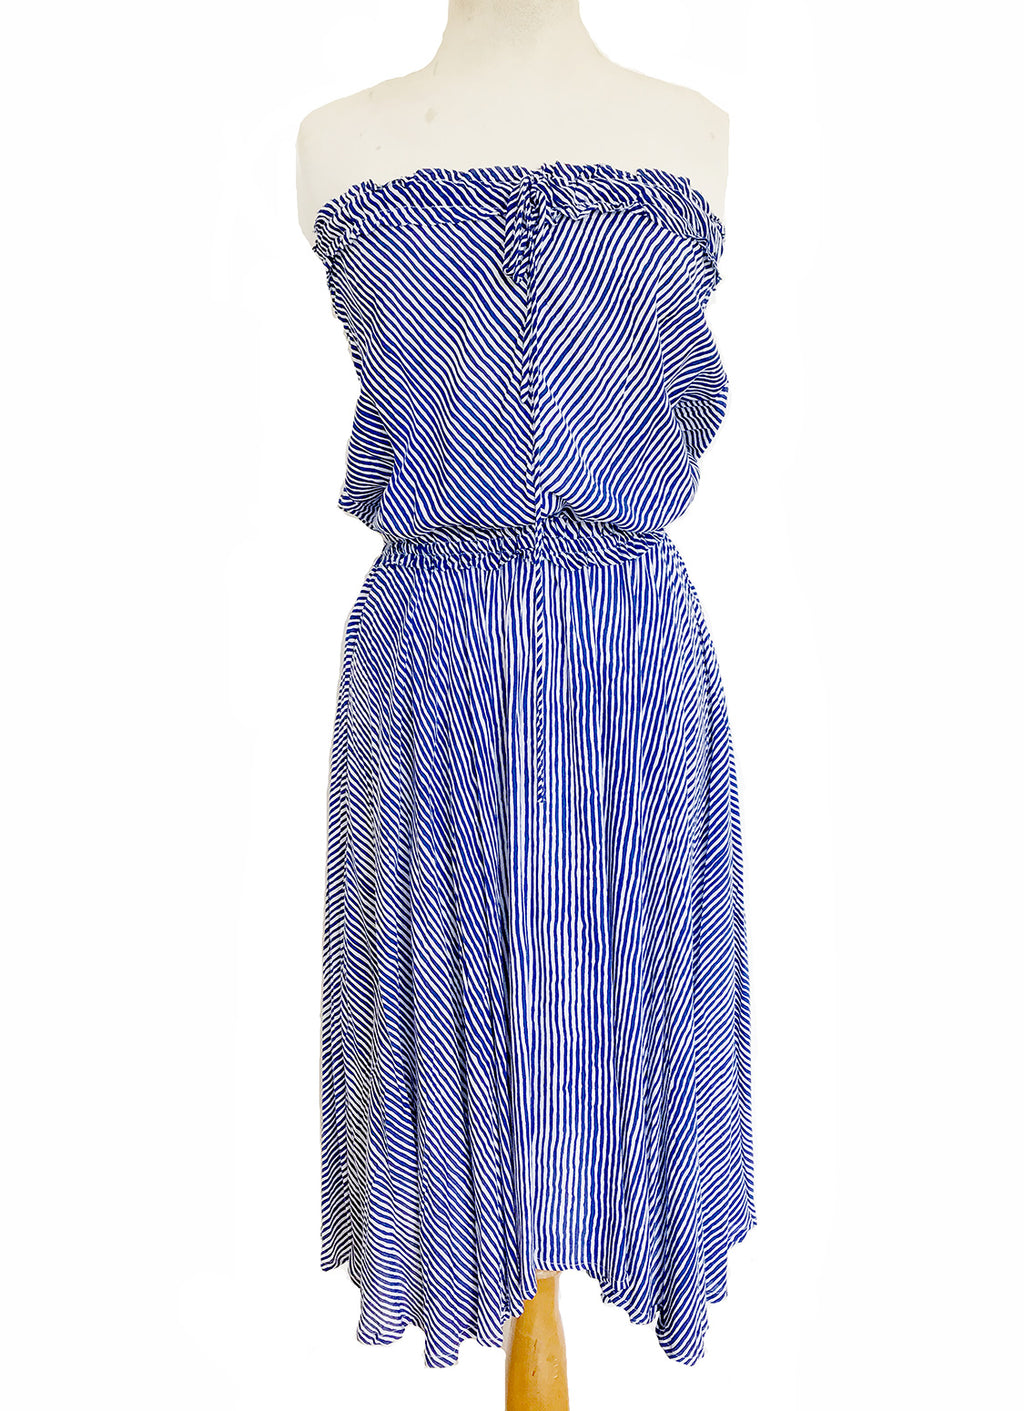 Riviera Dress - St Barts Blue Stripe